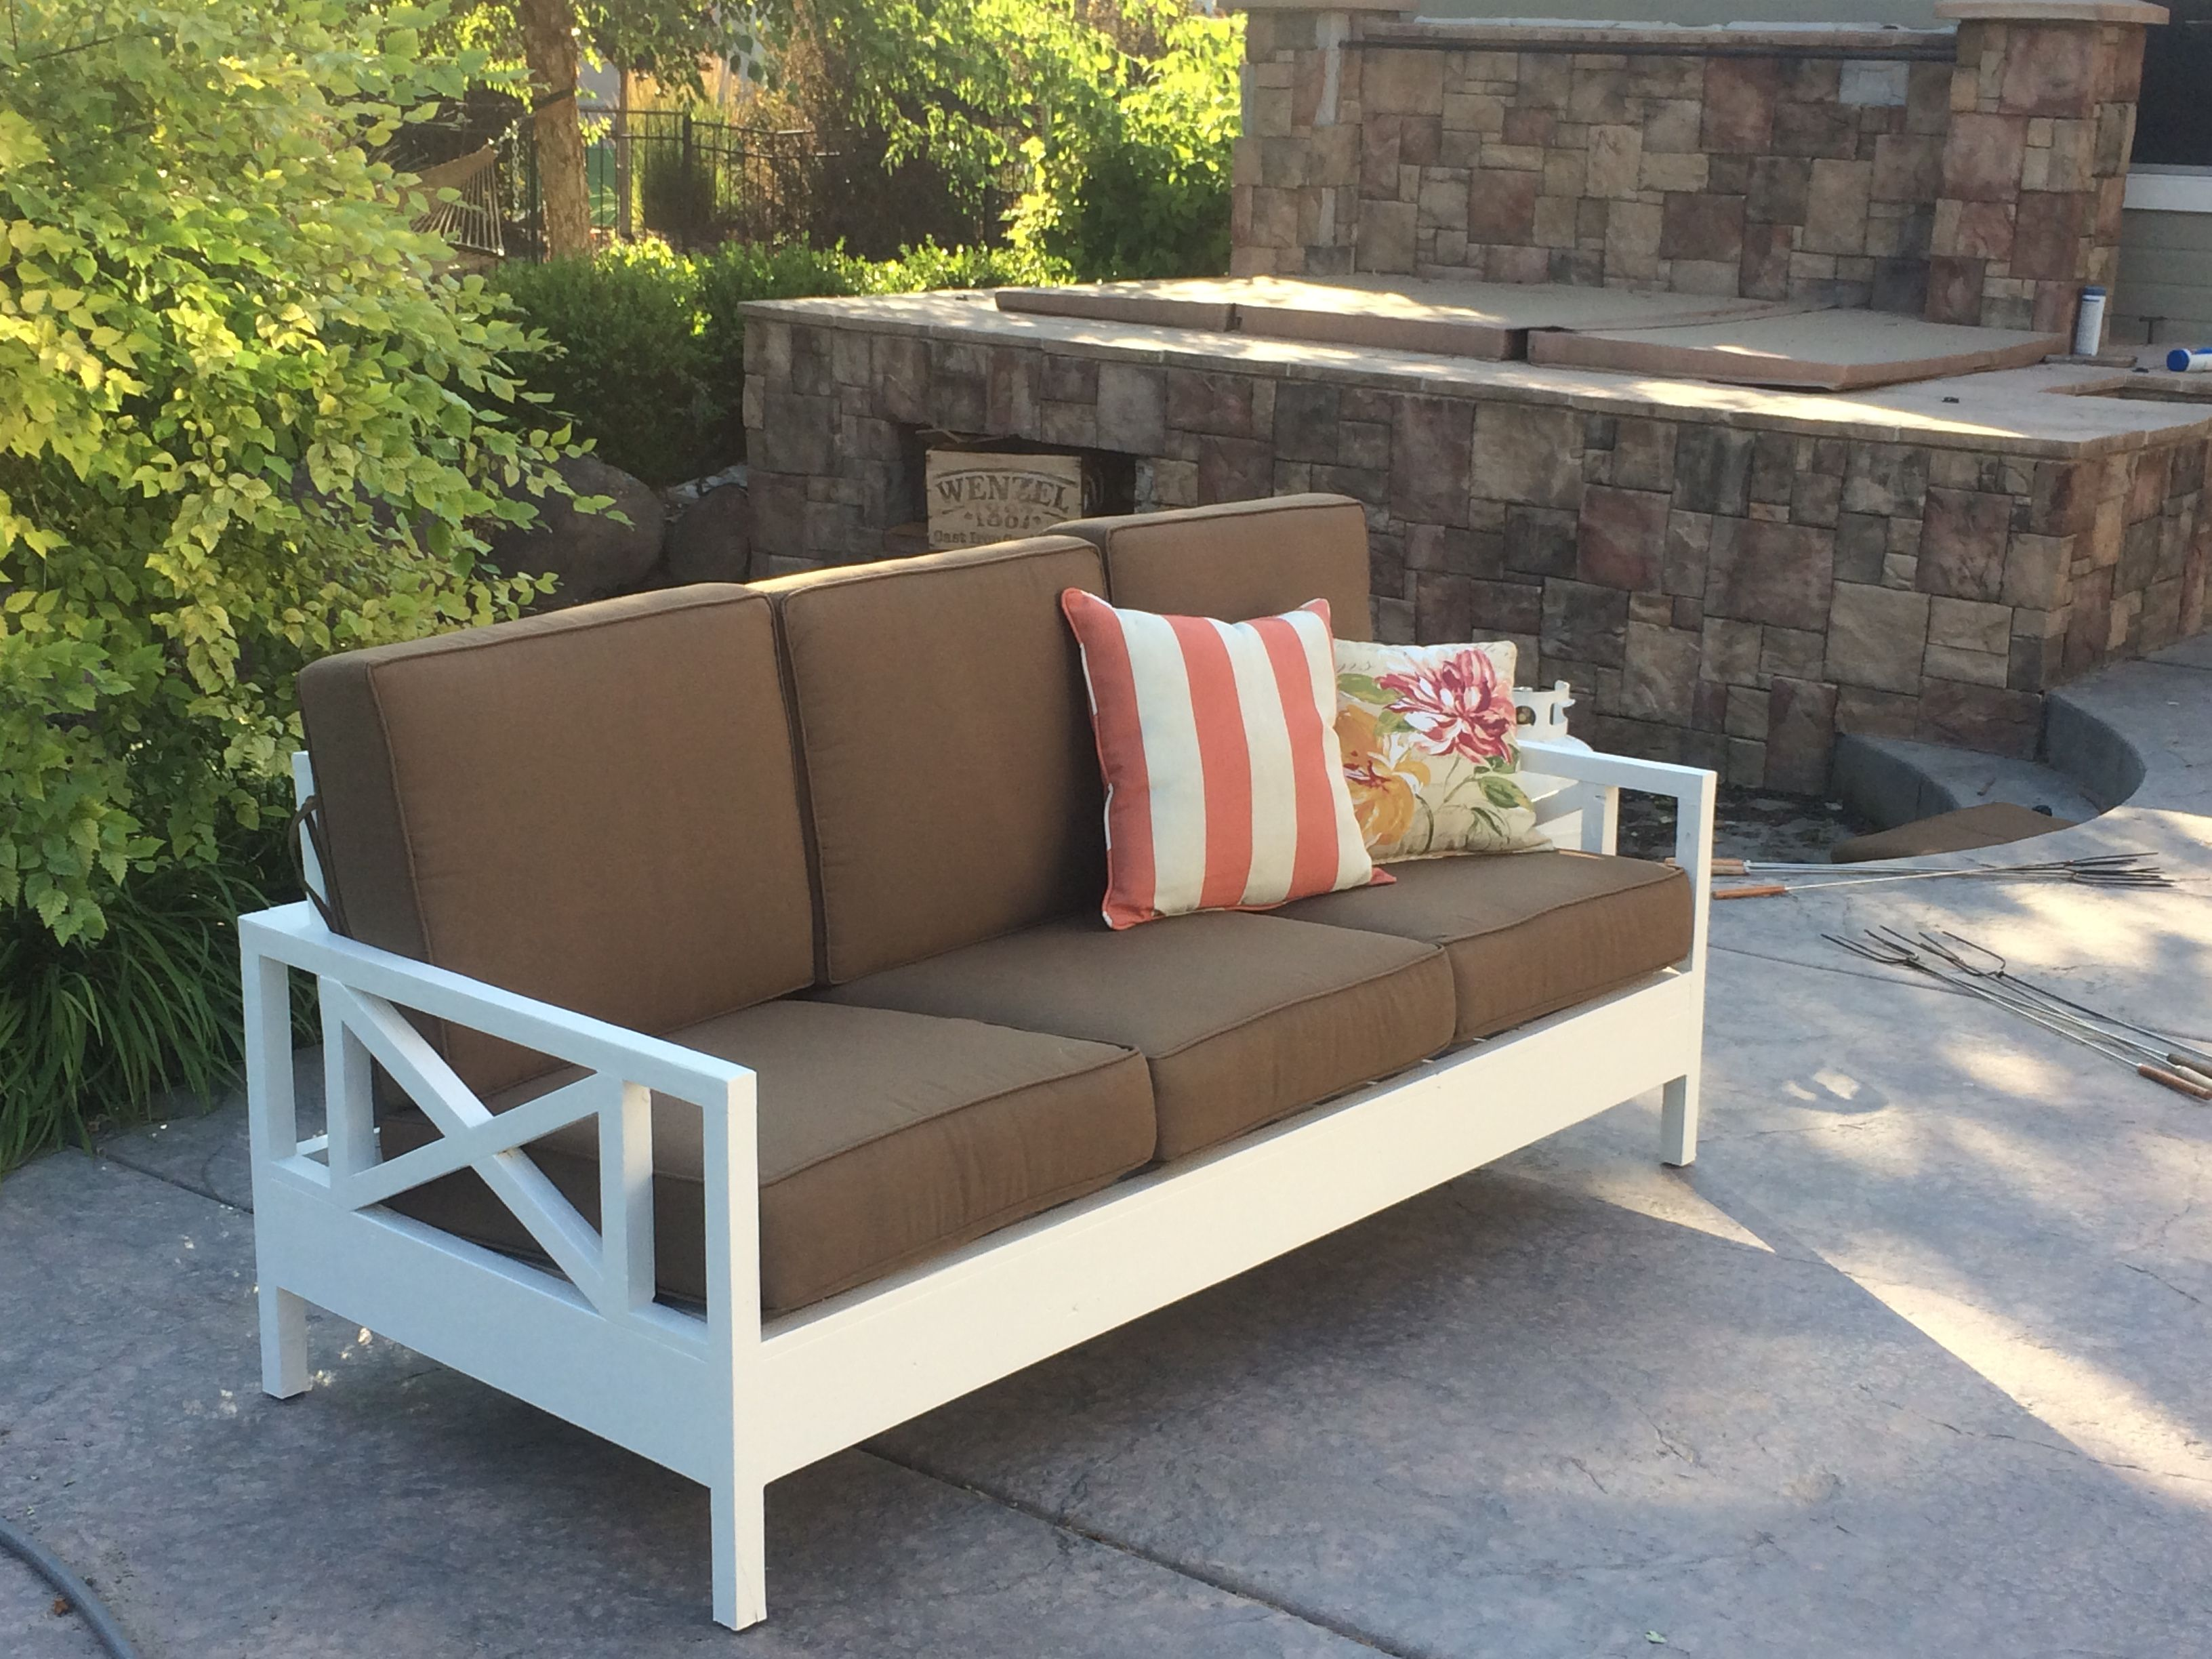 Outdoor Couch Outdoor Sofa Mash Up Do It Yourself Home Projects From